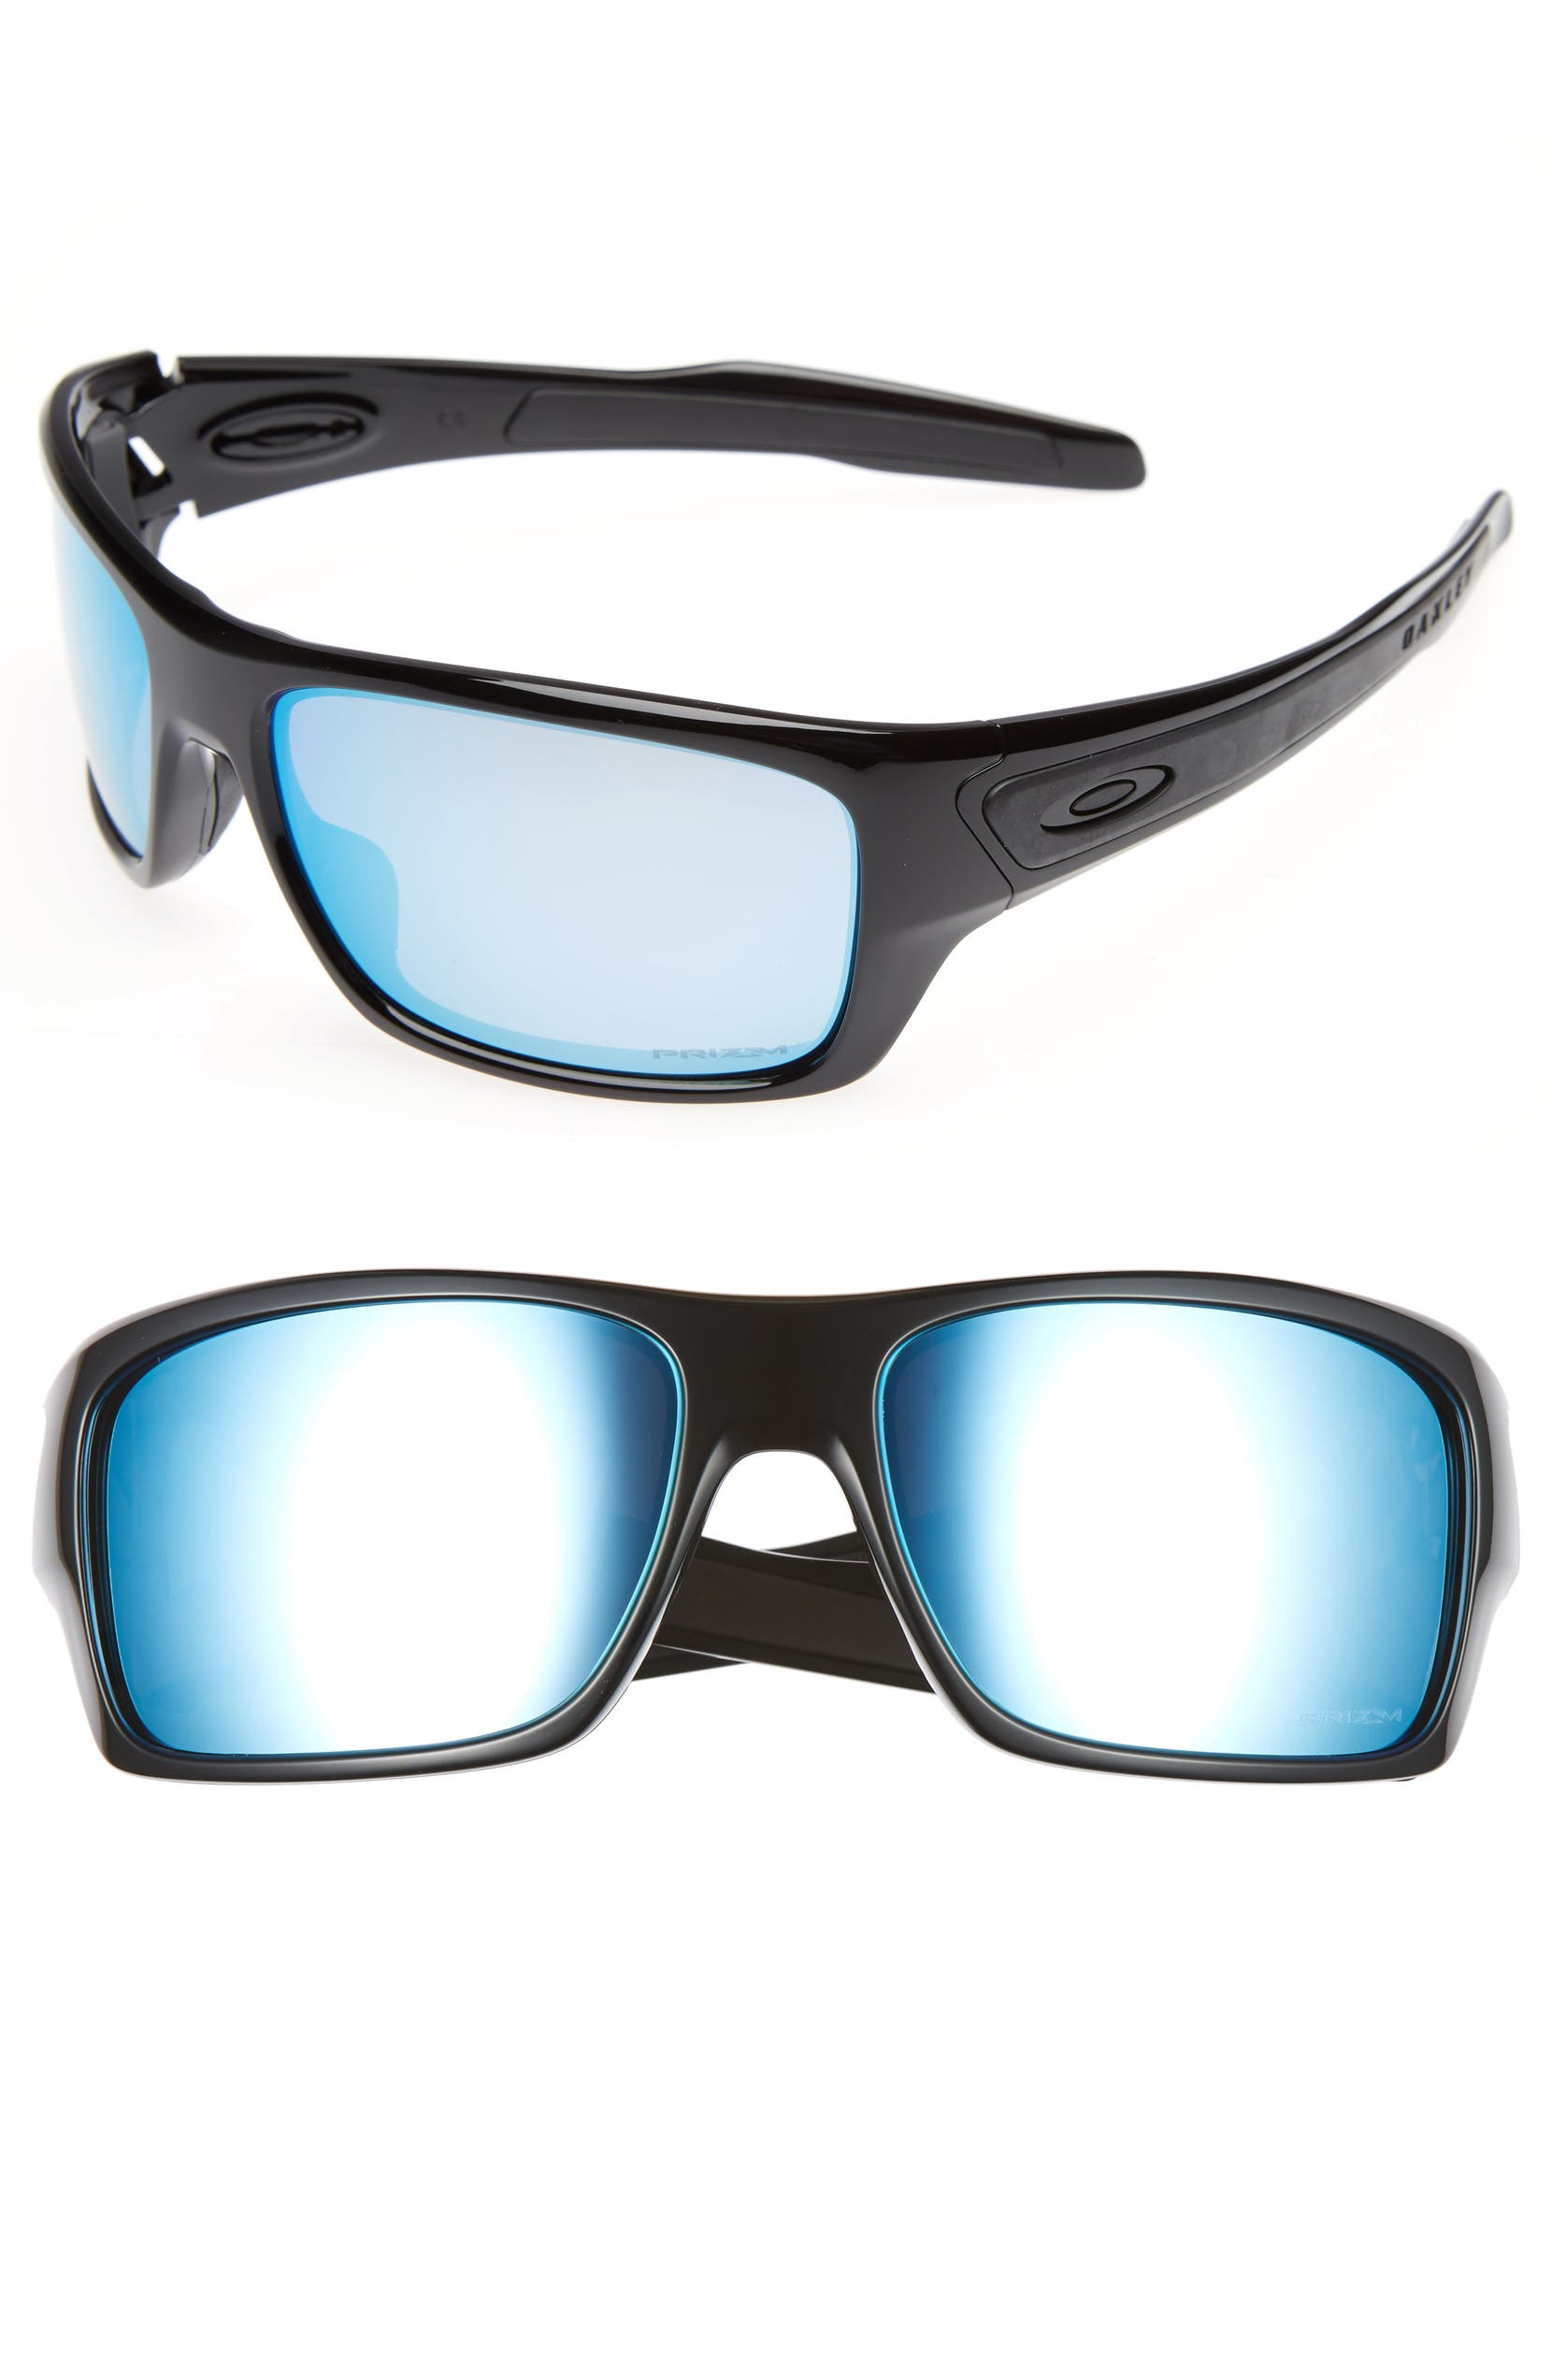 21e2e8fe0b5 Oakley Turbine H2O 65mm Polarized Sunglasses